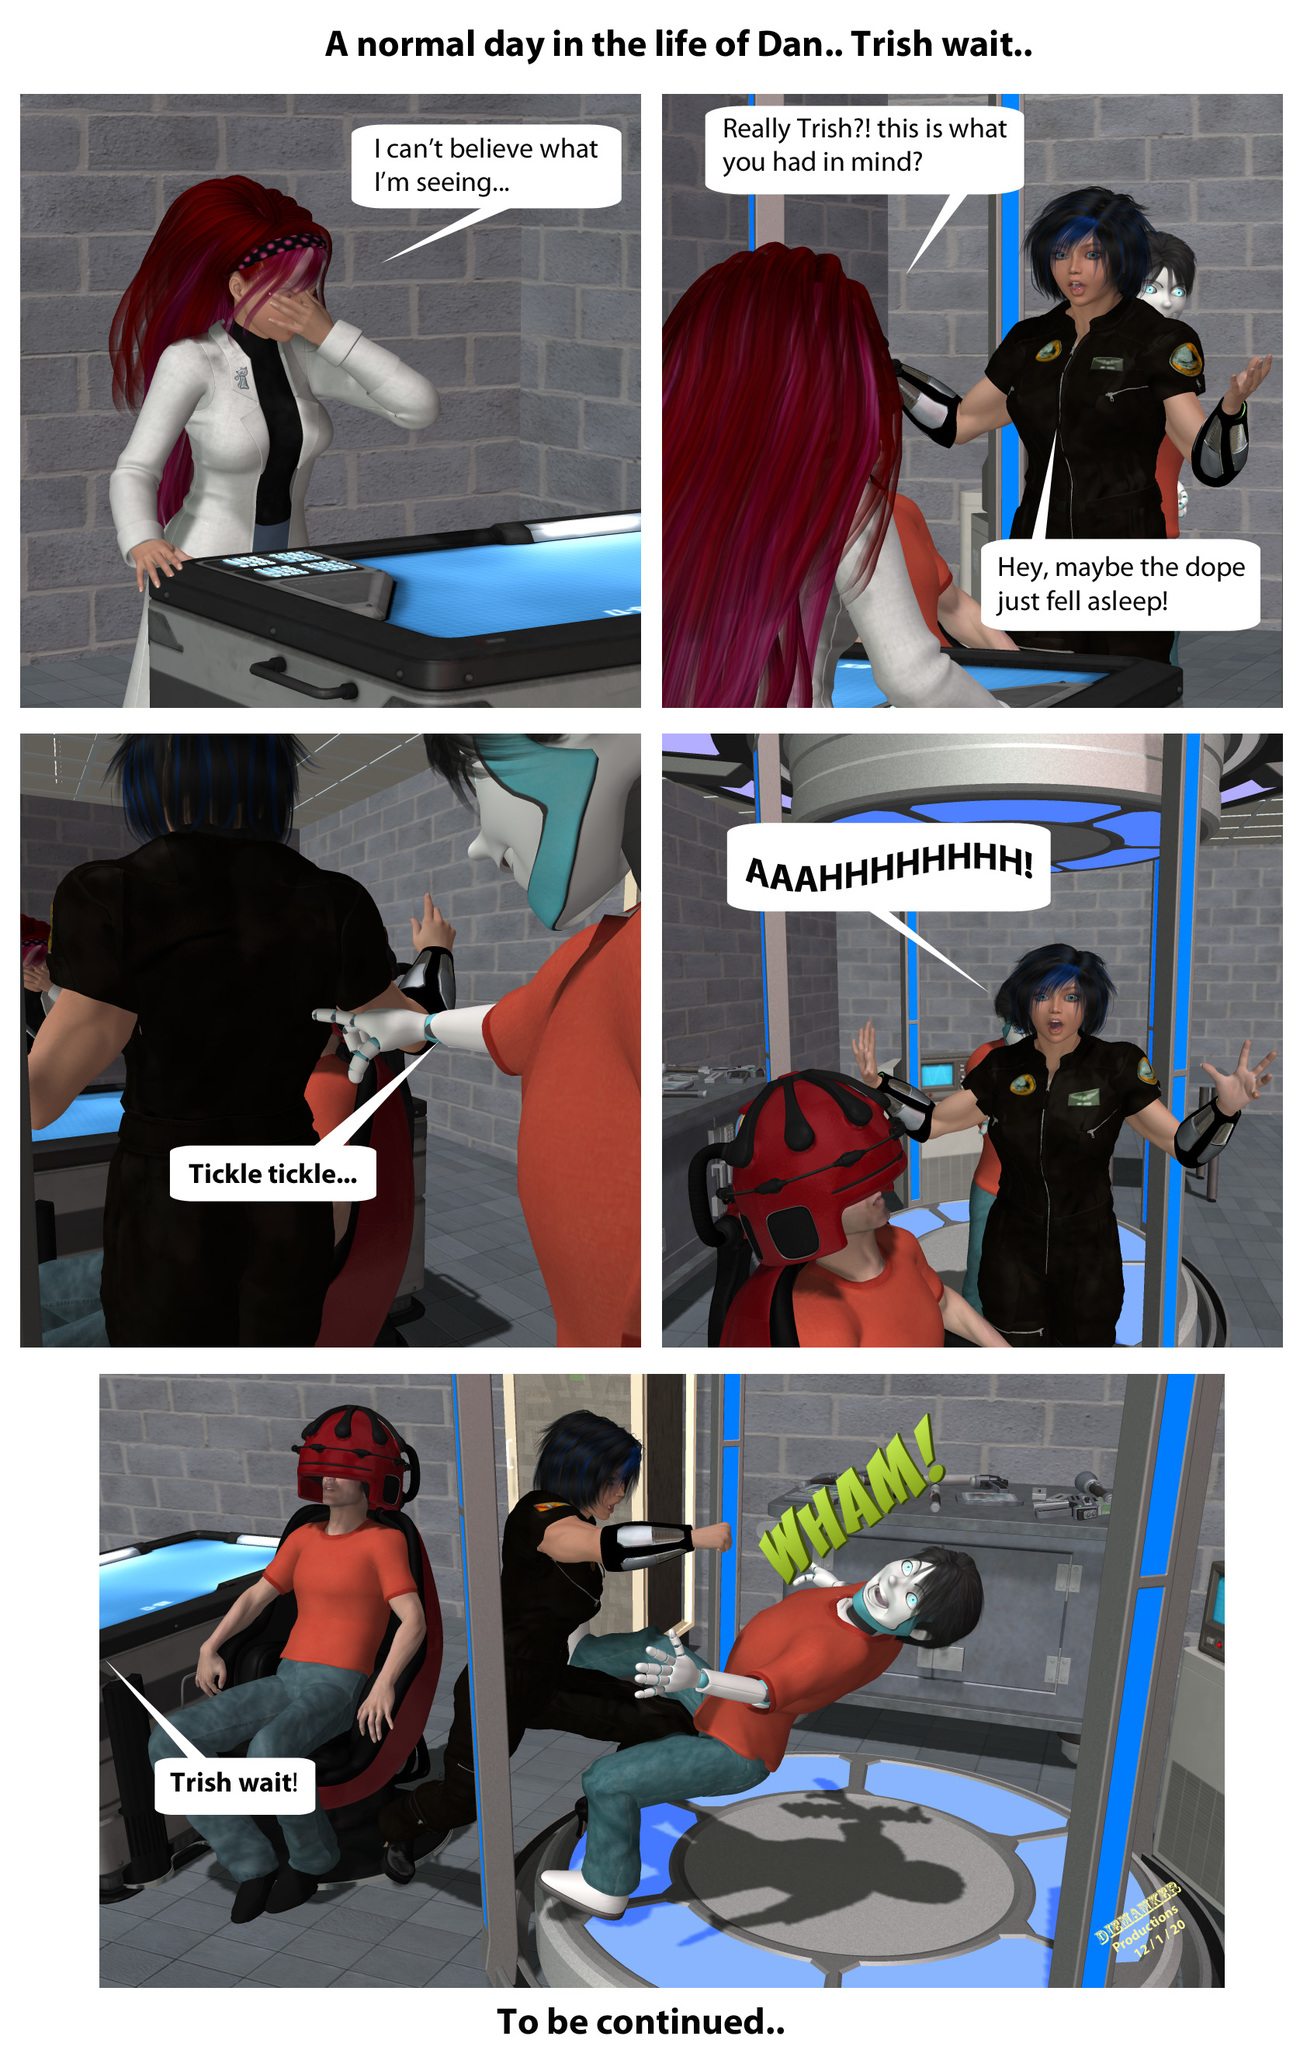 A normal day in the life of Dan... Trish wait!.. by Diemamker